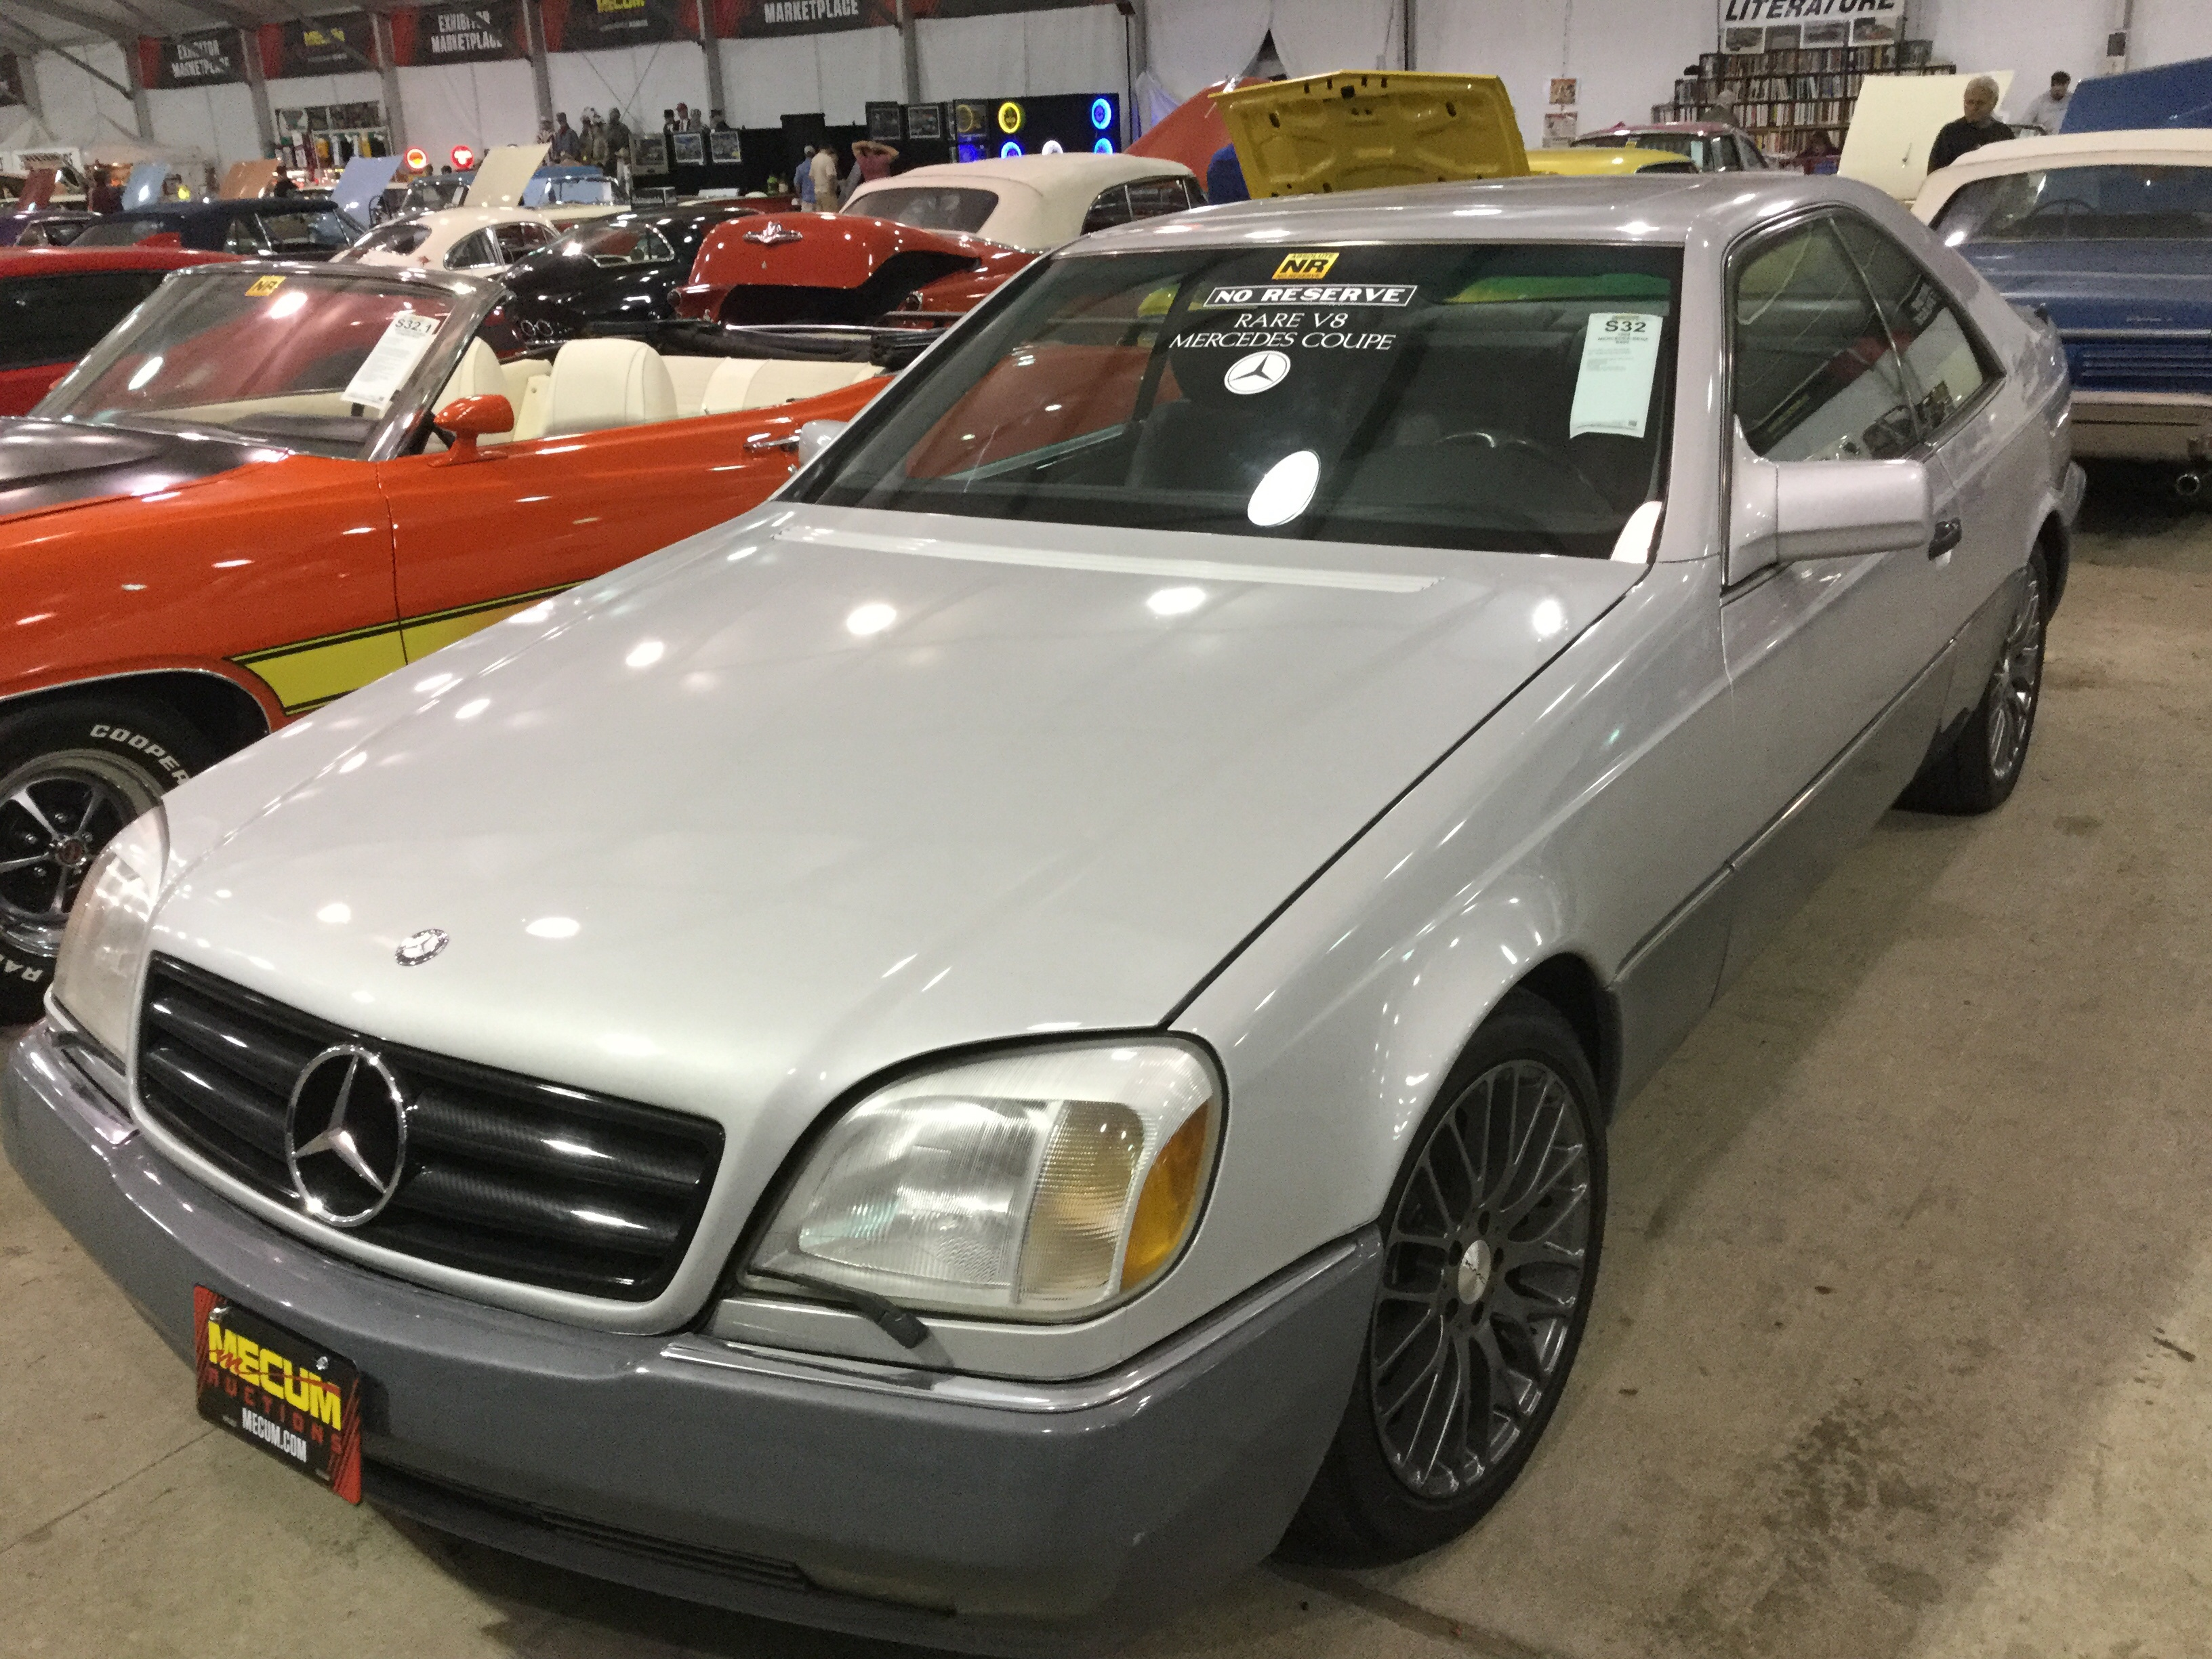 Mercedes S320 Modified Luxury 1998 Mercedes Benz S320 Values Hagerty Valuation toola-2434 Of Fresh Mercedes S320 Modified